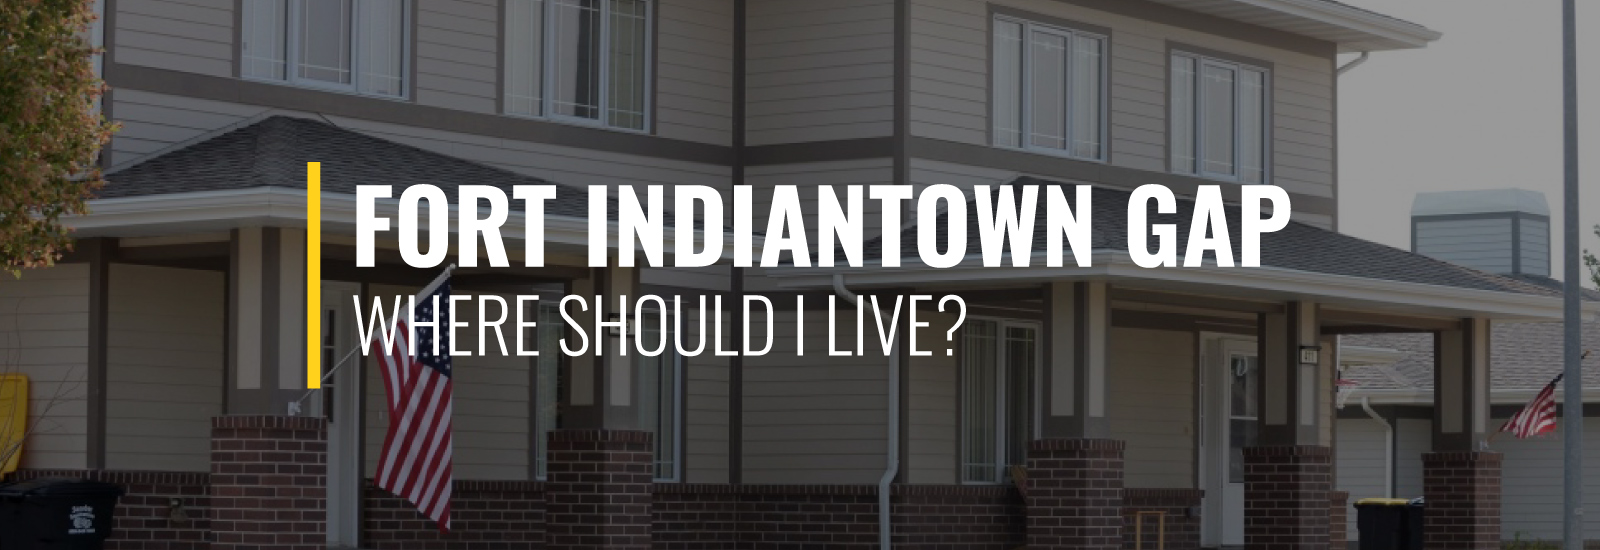 Where Should I Live Near Fort Indiantown Gap?